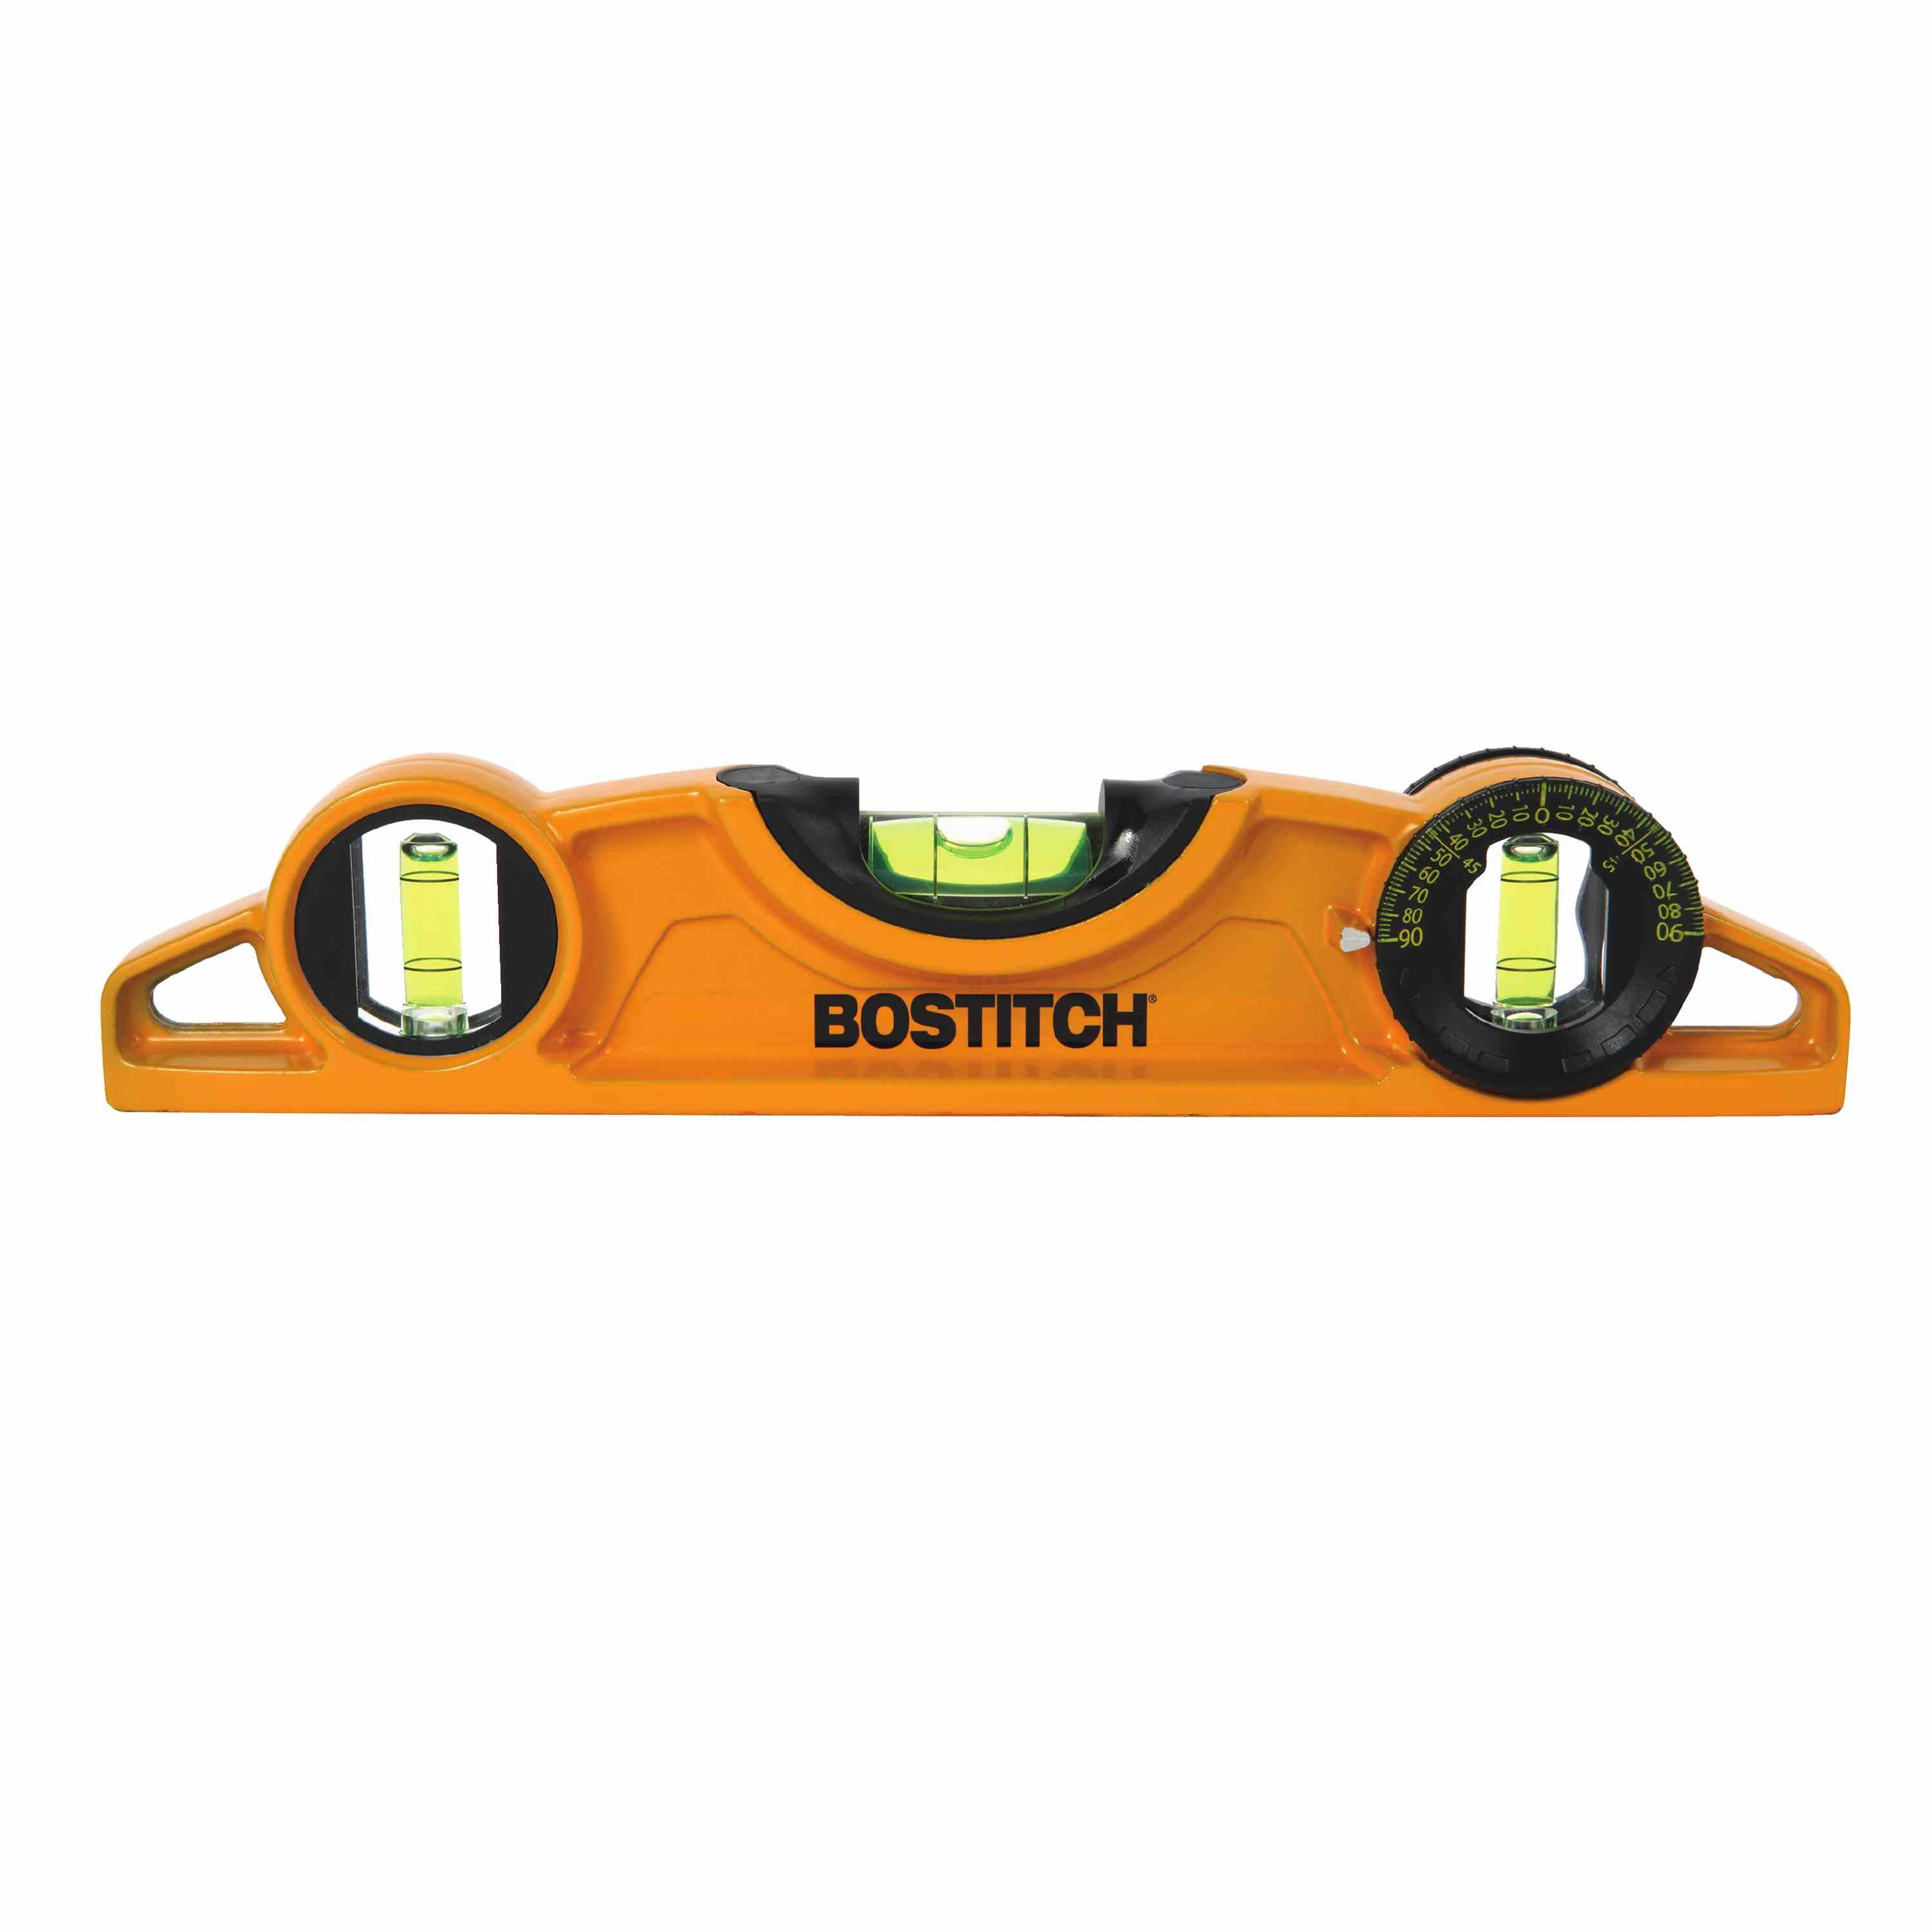 Bostitch - Torpedo Level - 43-709